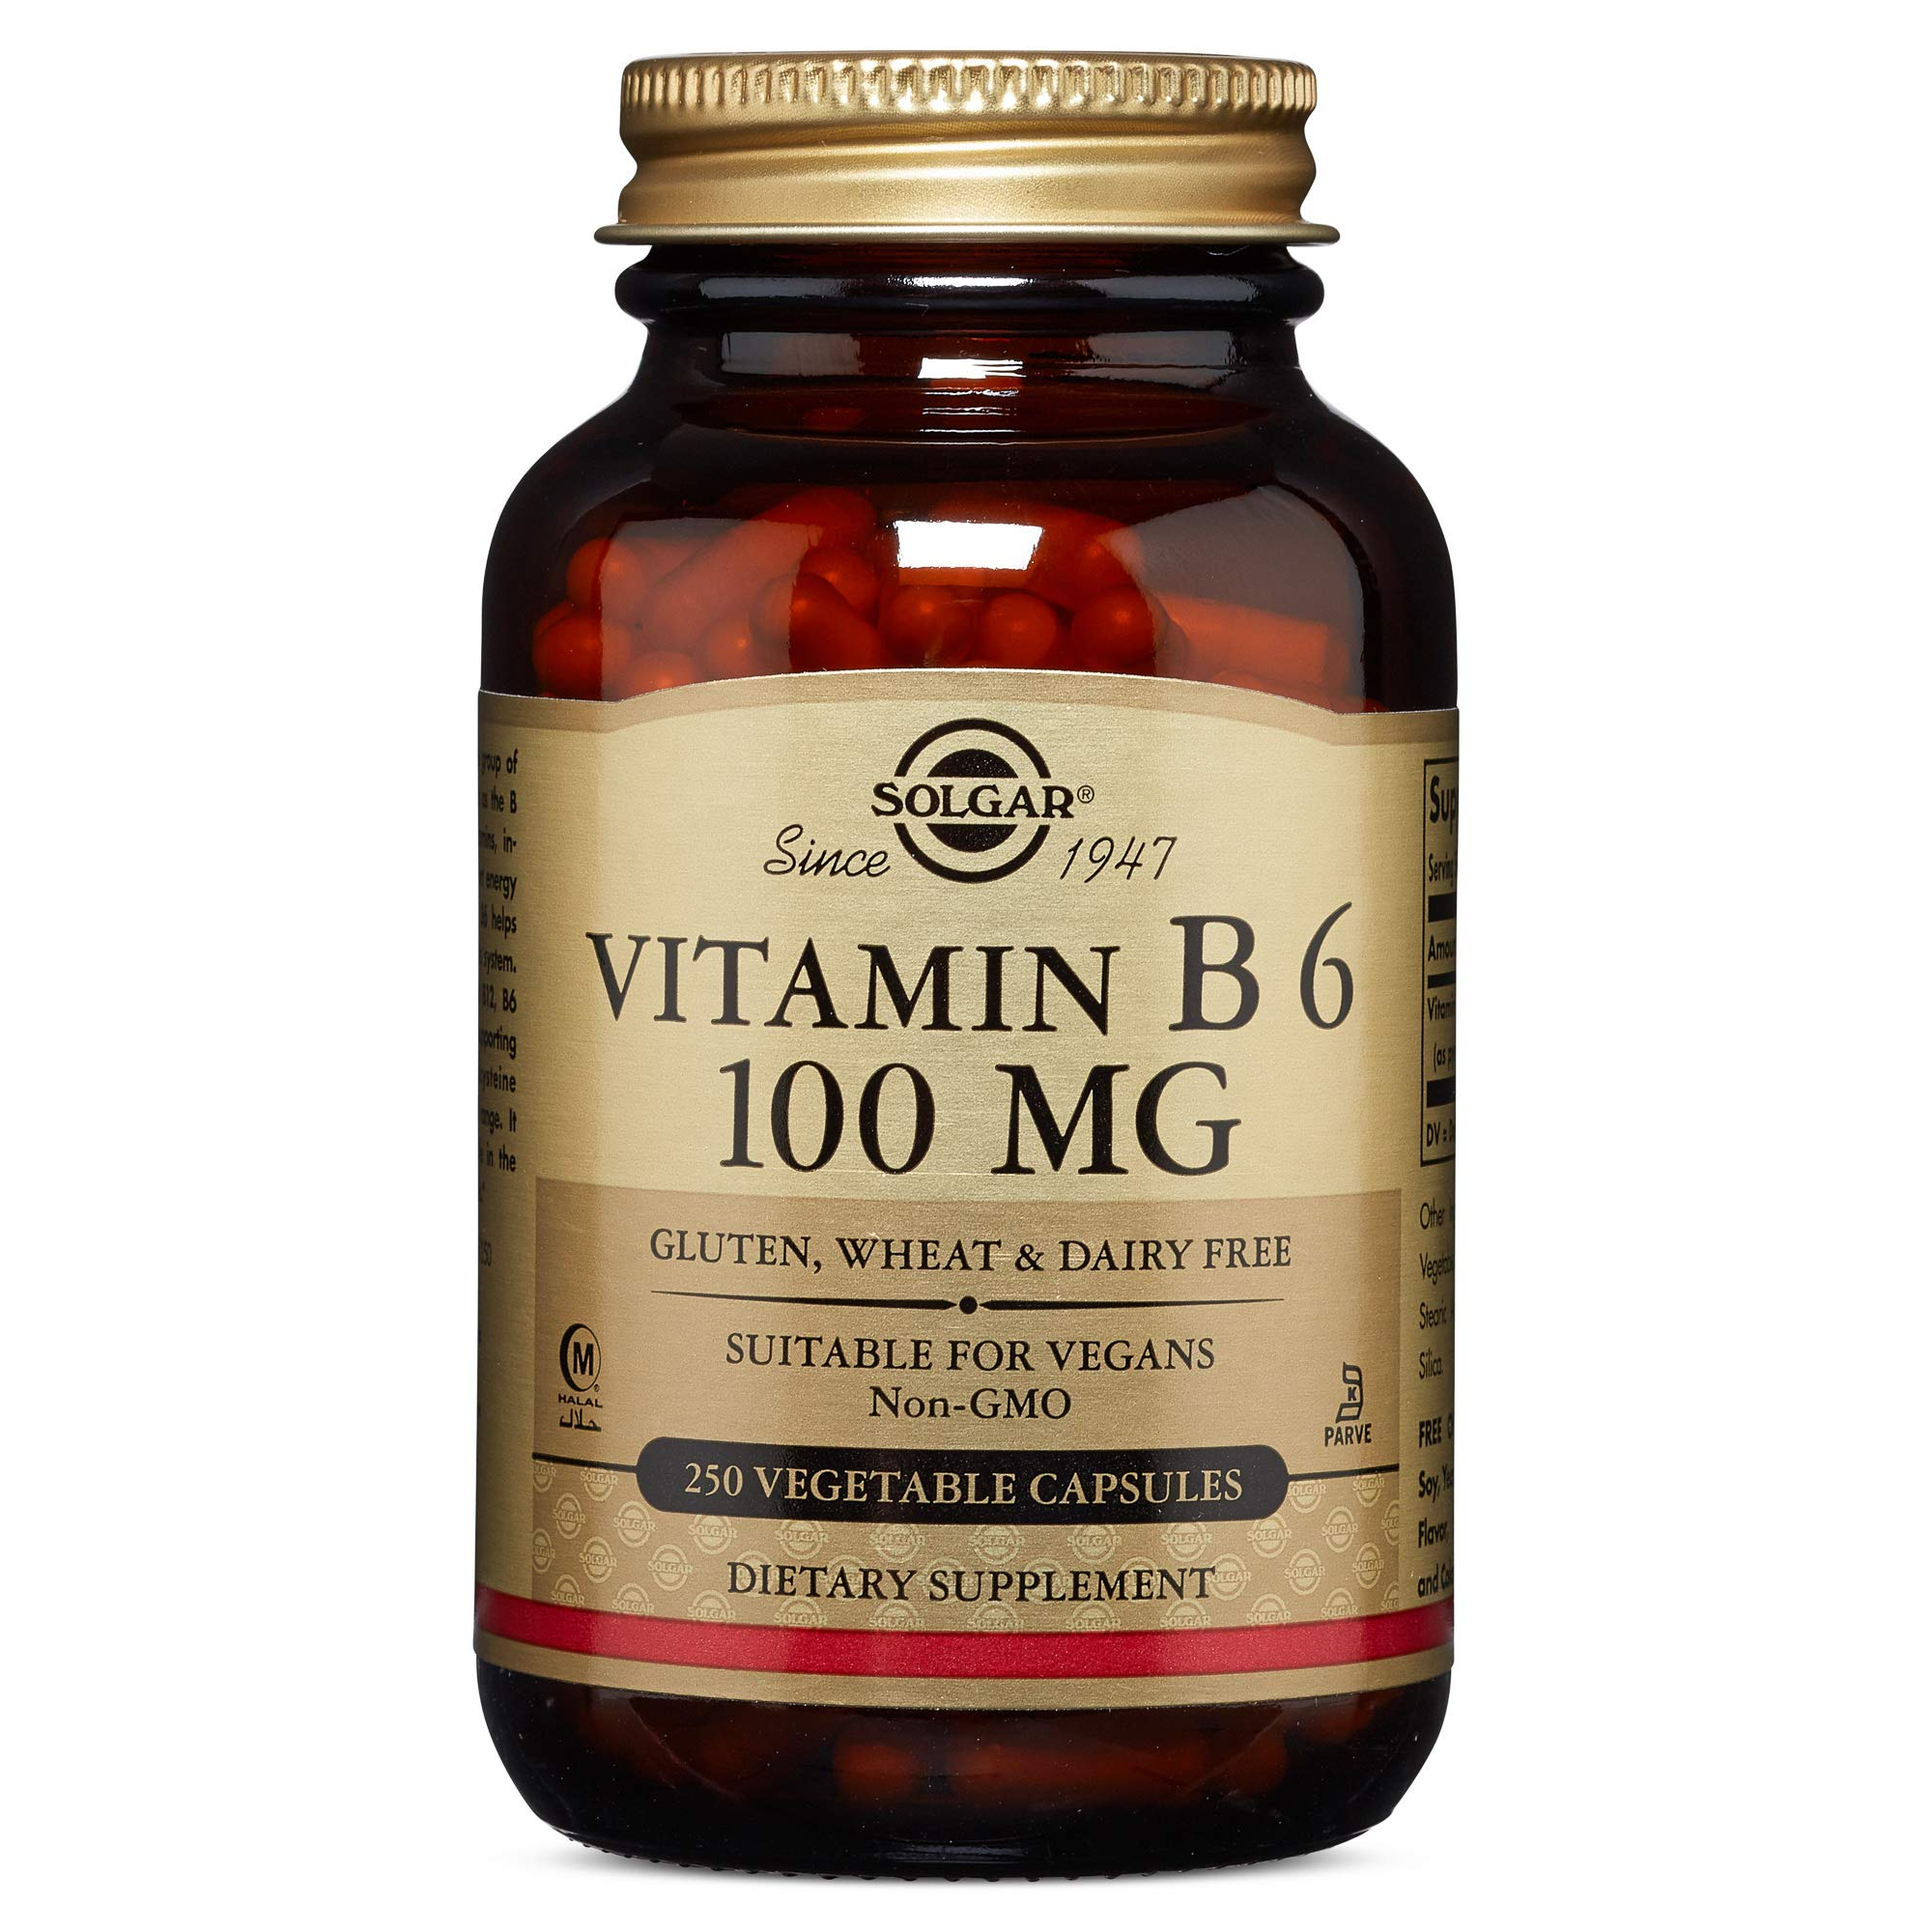 Solgar - Vitamin B6, 100 mg, 250 Vegetable Capsules by Solgar